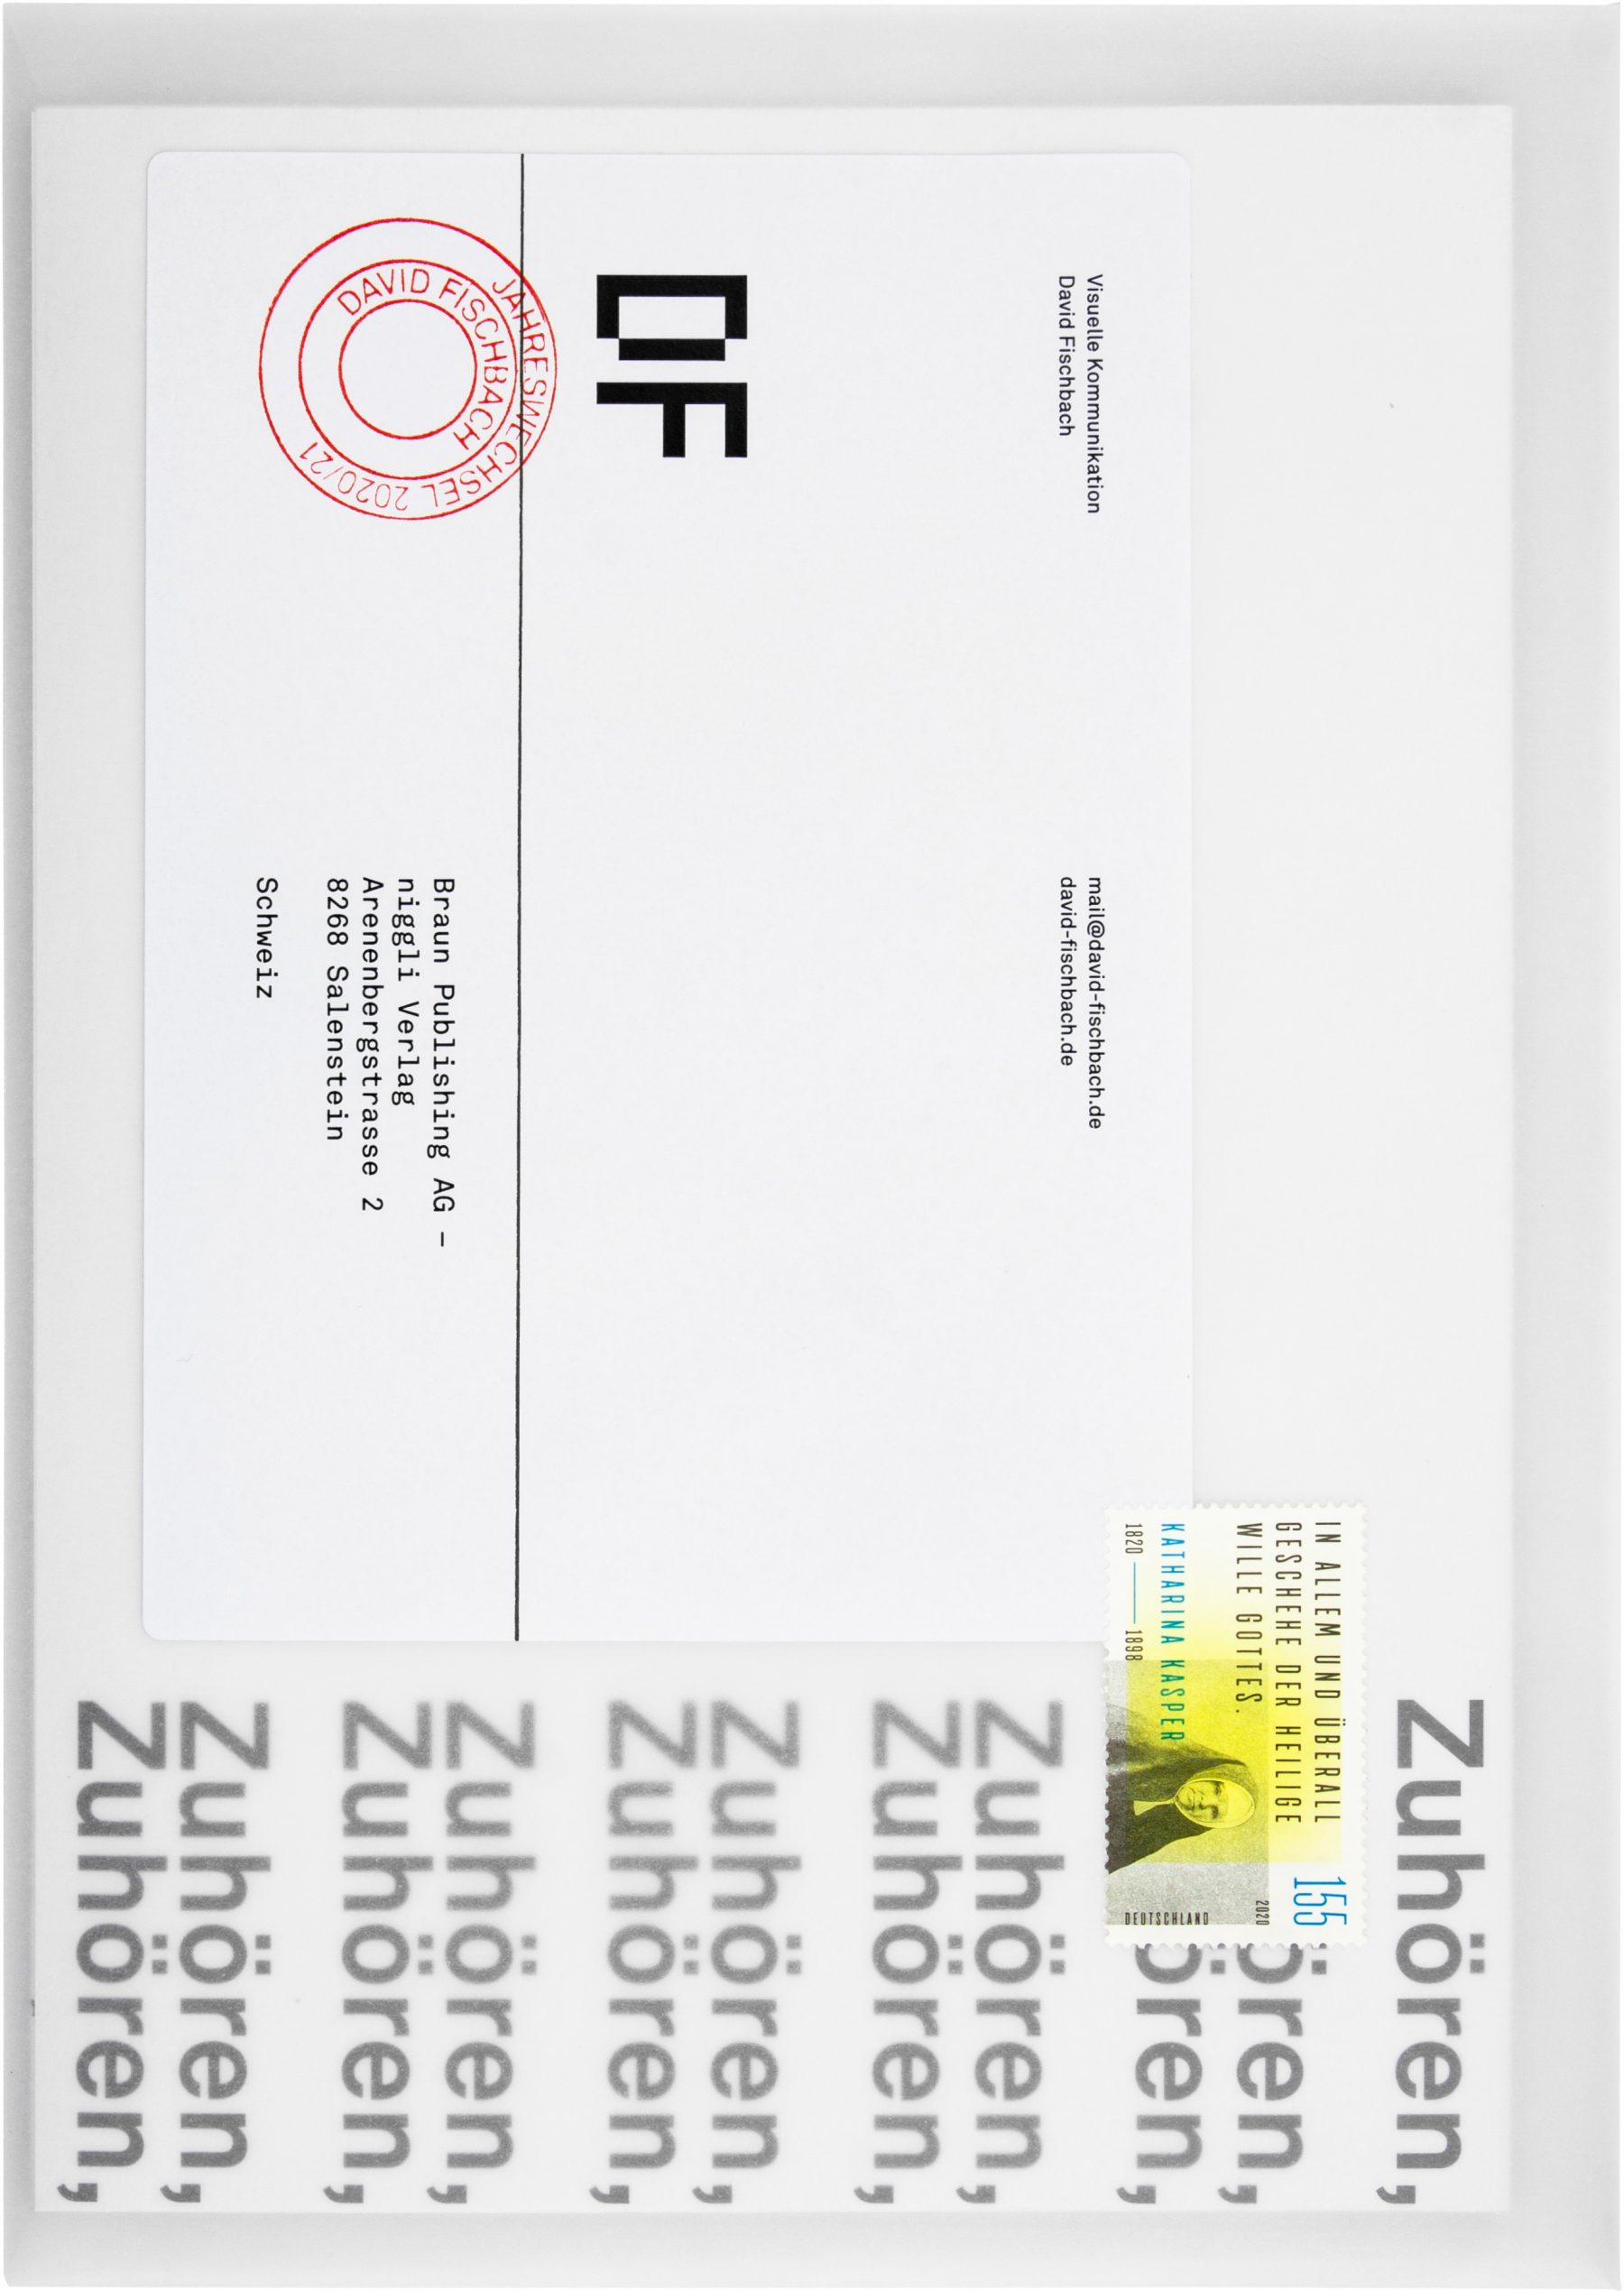 Turn of the year 2020/21, Ohne Titel, Poster, Christian Jendreiko, David Fischbach